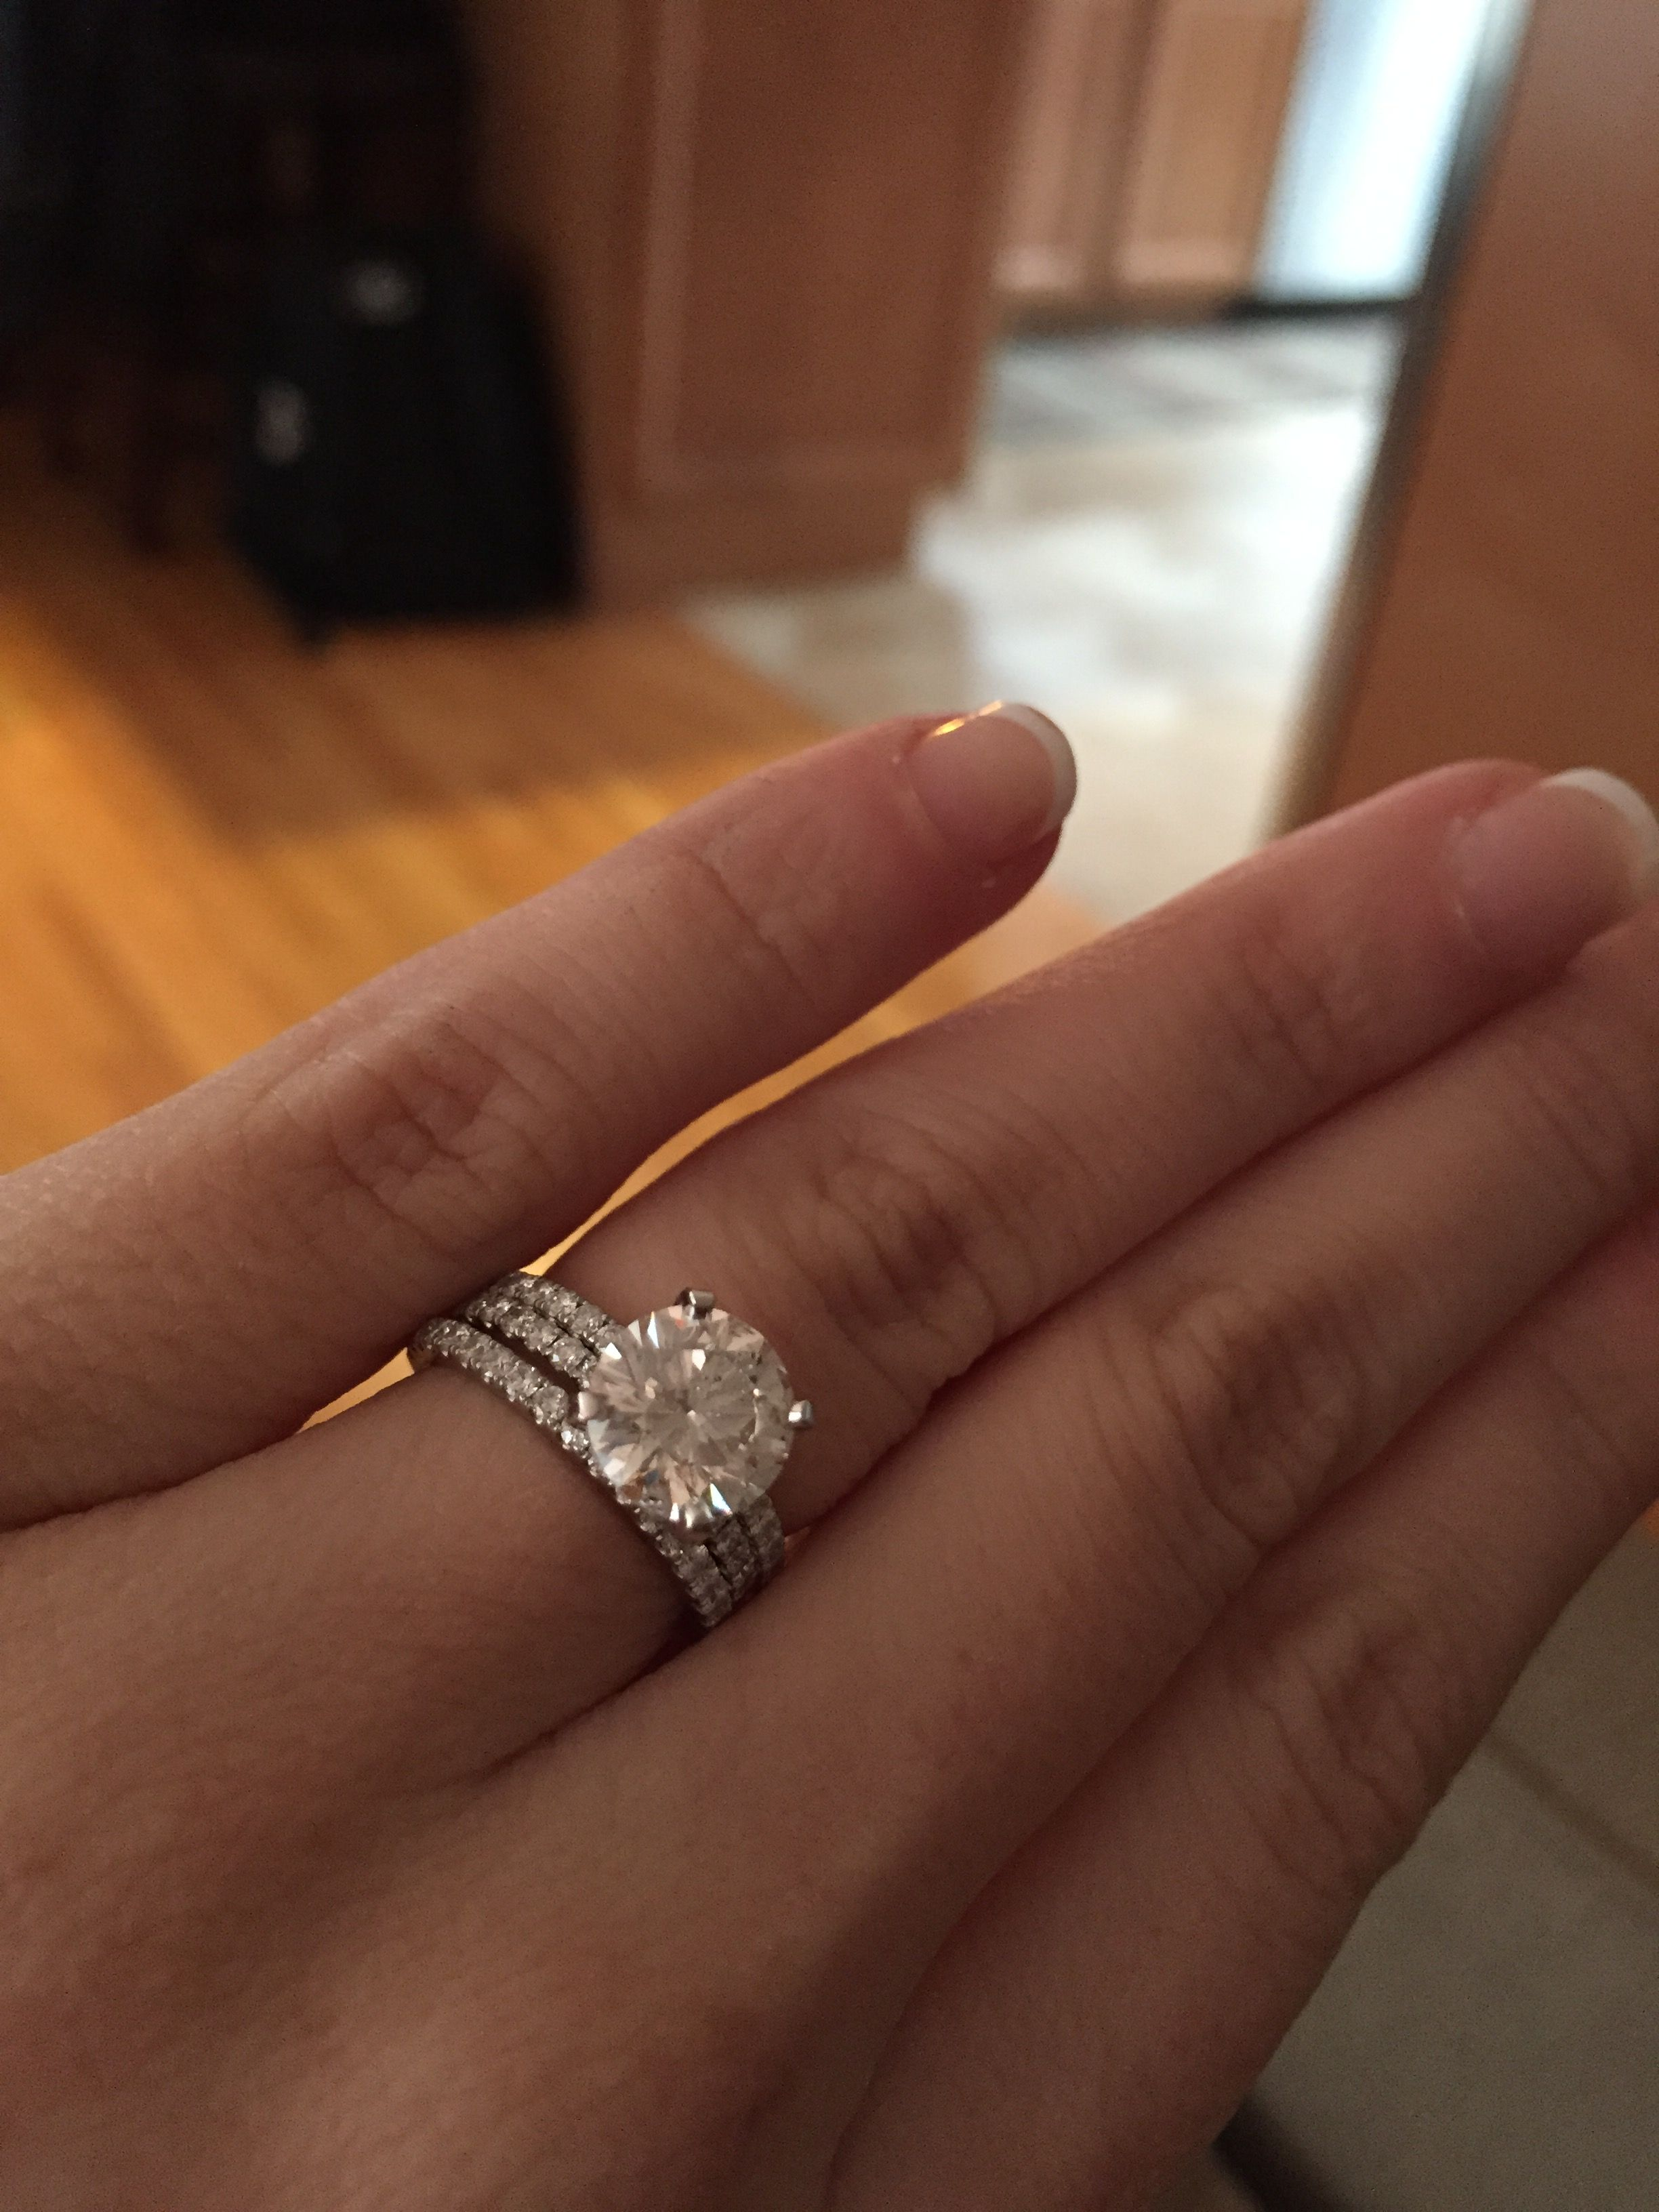 I Am A Size 4 With A 2 Ct Ring And I Love It Not Too Big At All At Least For Me Doesn T Catch On Anyth Eternity Wedding Band